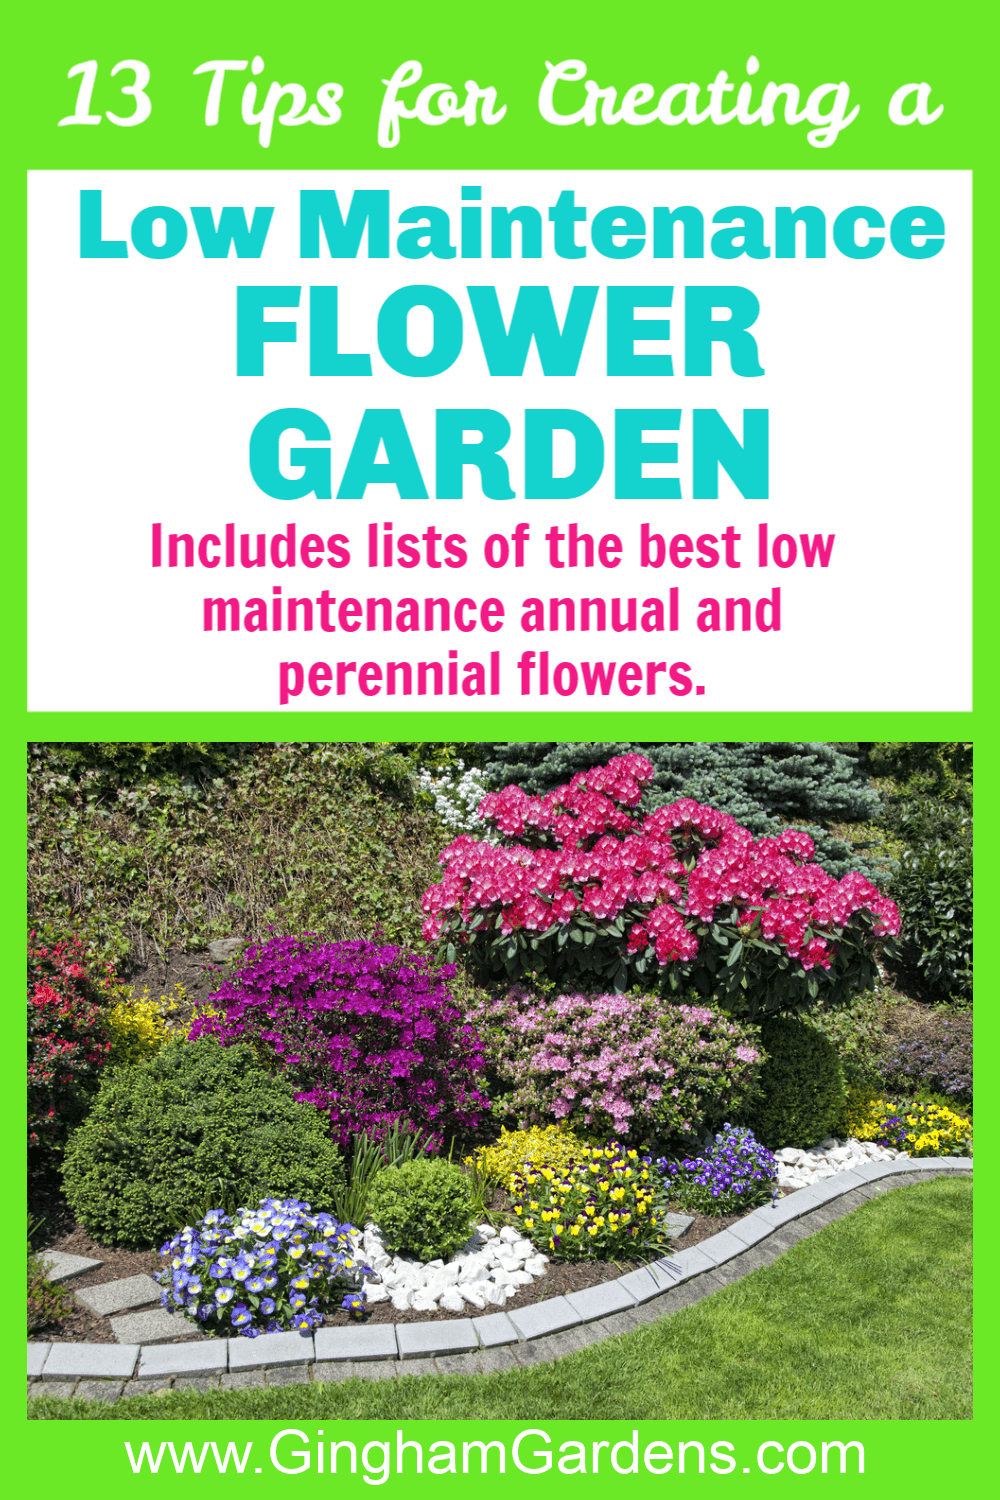 Image of a flower garden with text overlay - 13 tips for creating a low maintenance flower garden